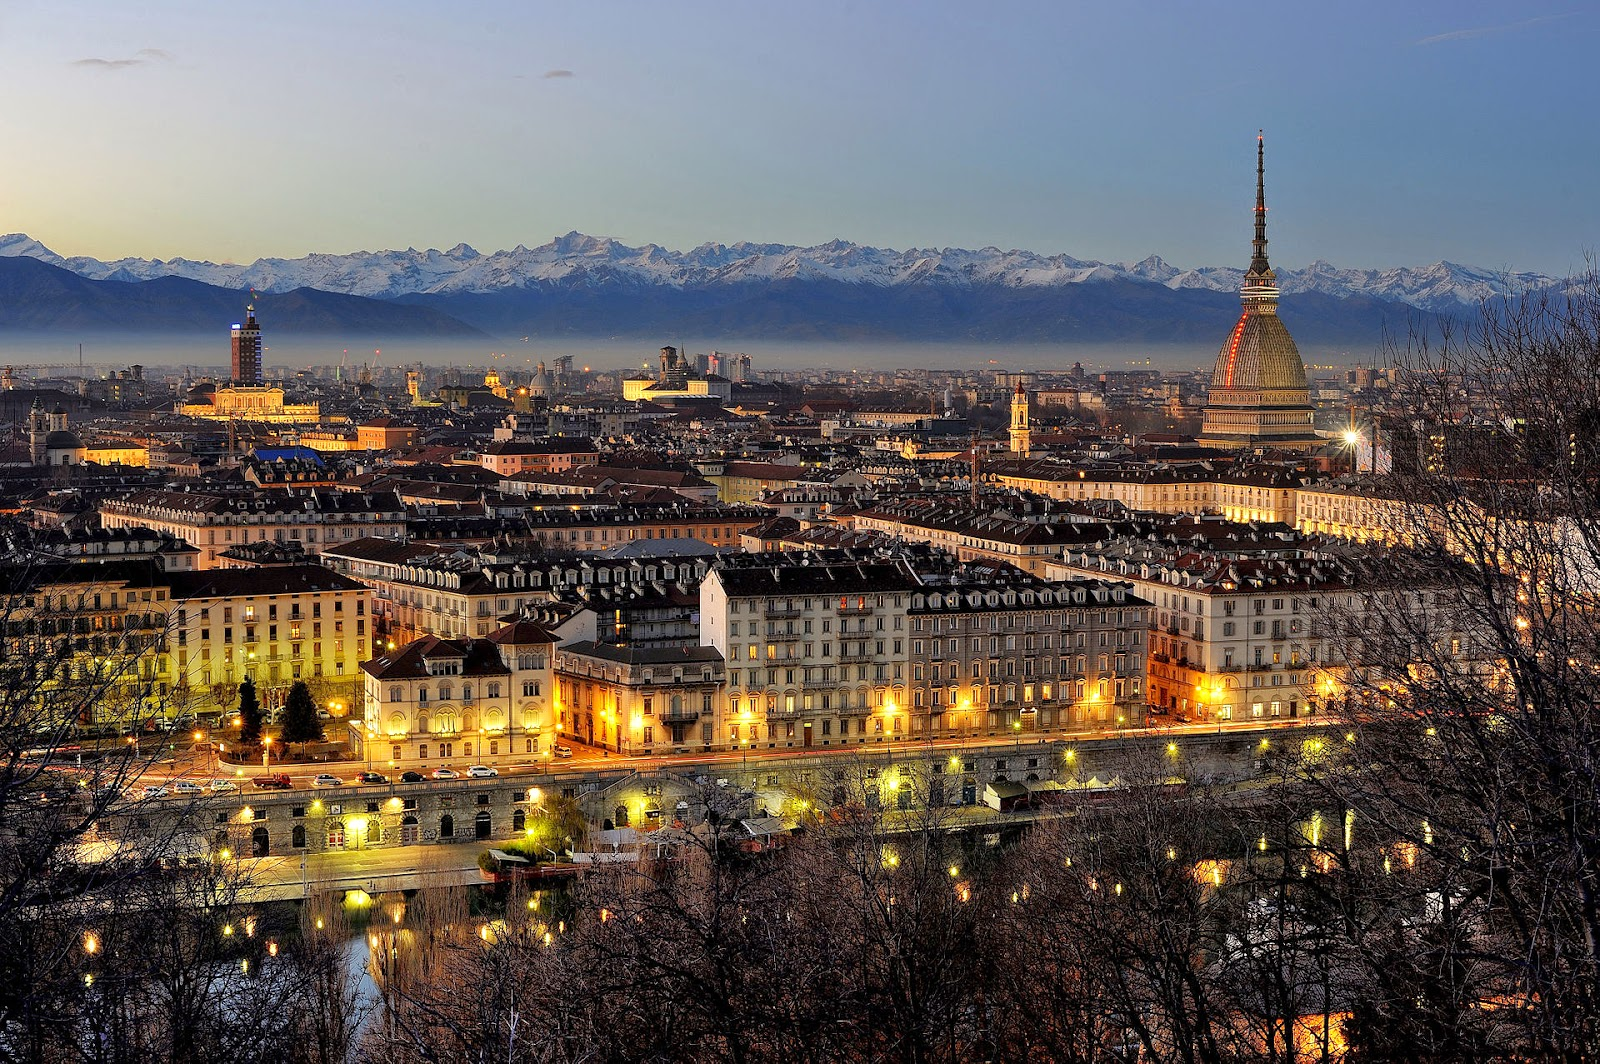 Turin, Italian city will provide eight million dollars when moving to Linux